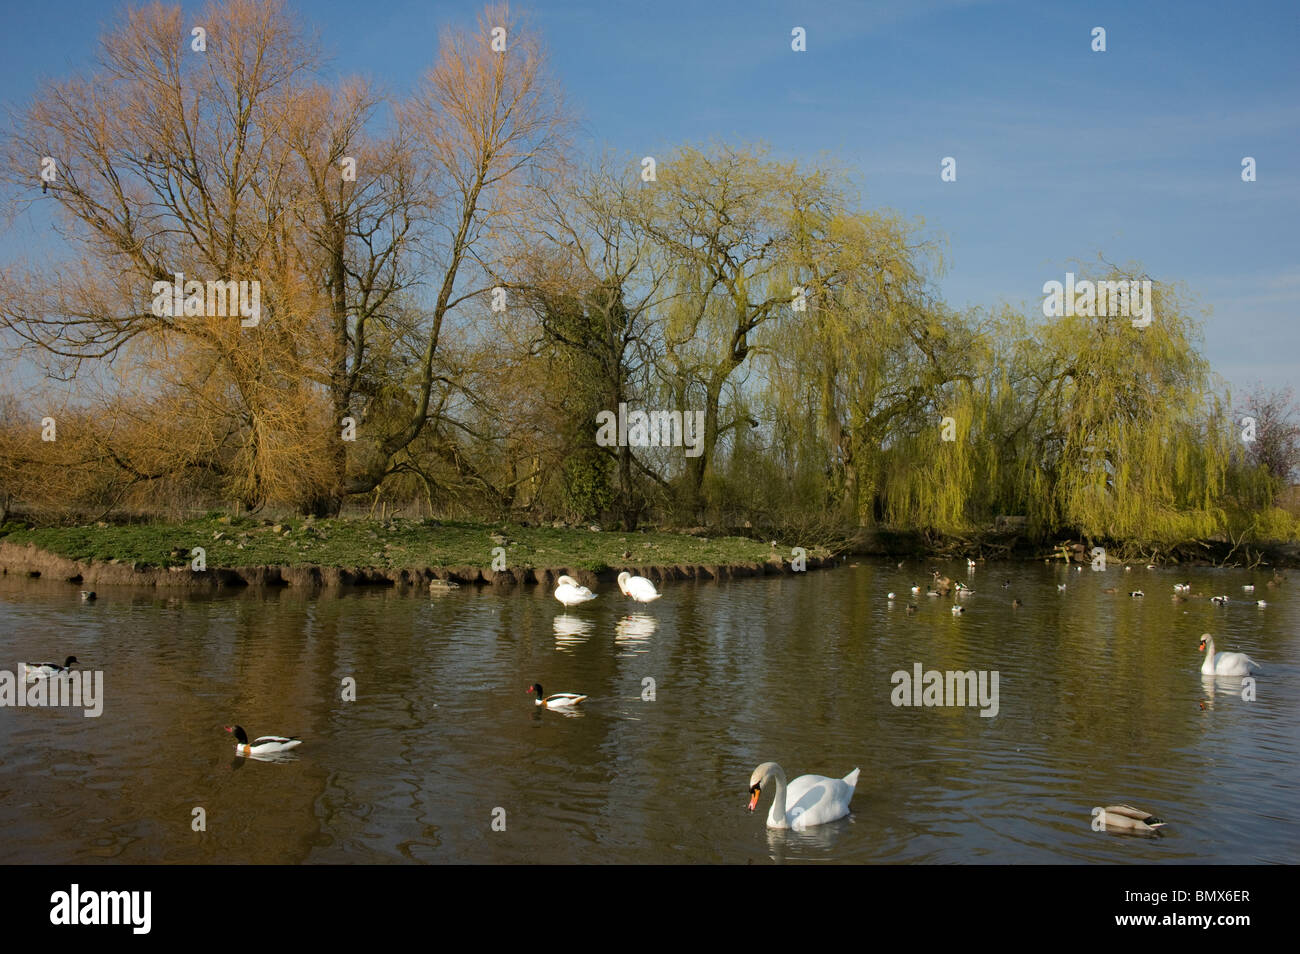 Slimbridge WWT in the spring wildfowl & willows leafing out Stock Photo